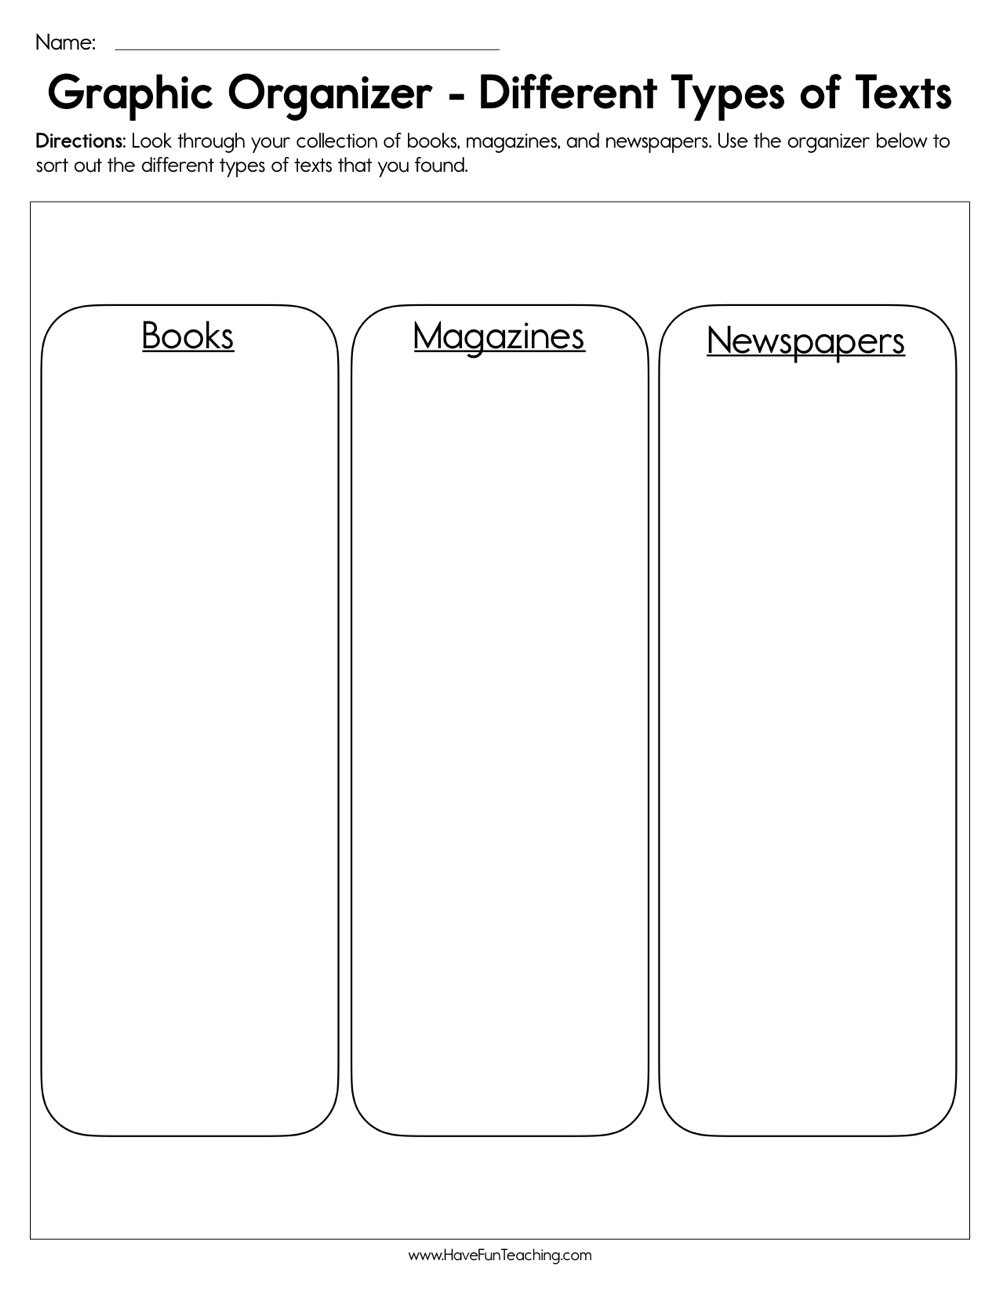 Resources   Have Fun Teaching - Free Printable Compare And Contrast Graphic Organizer